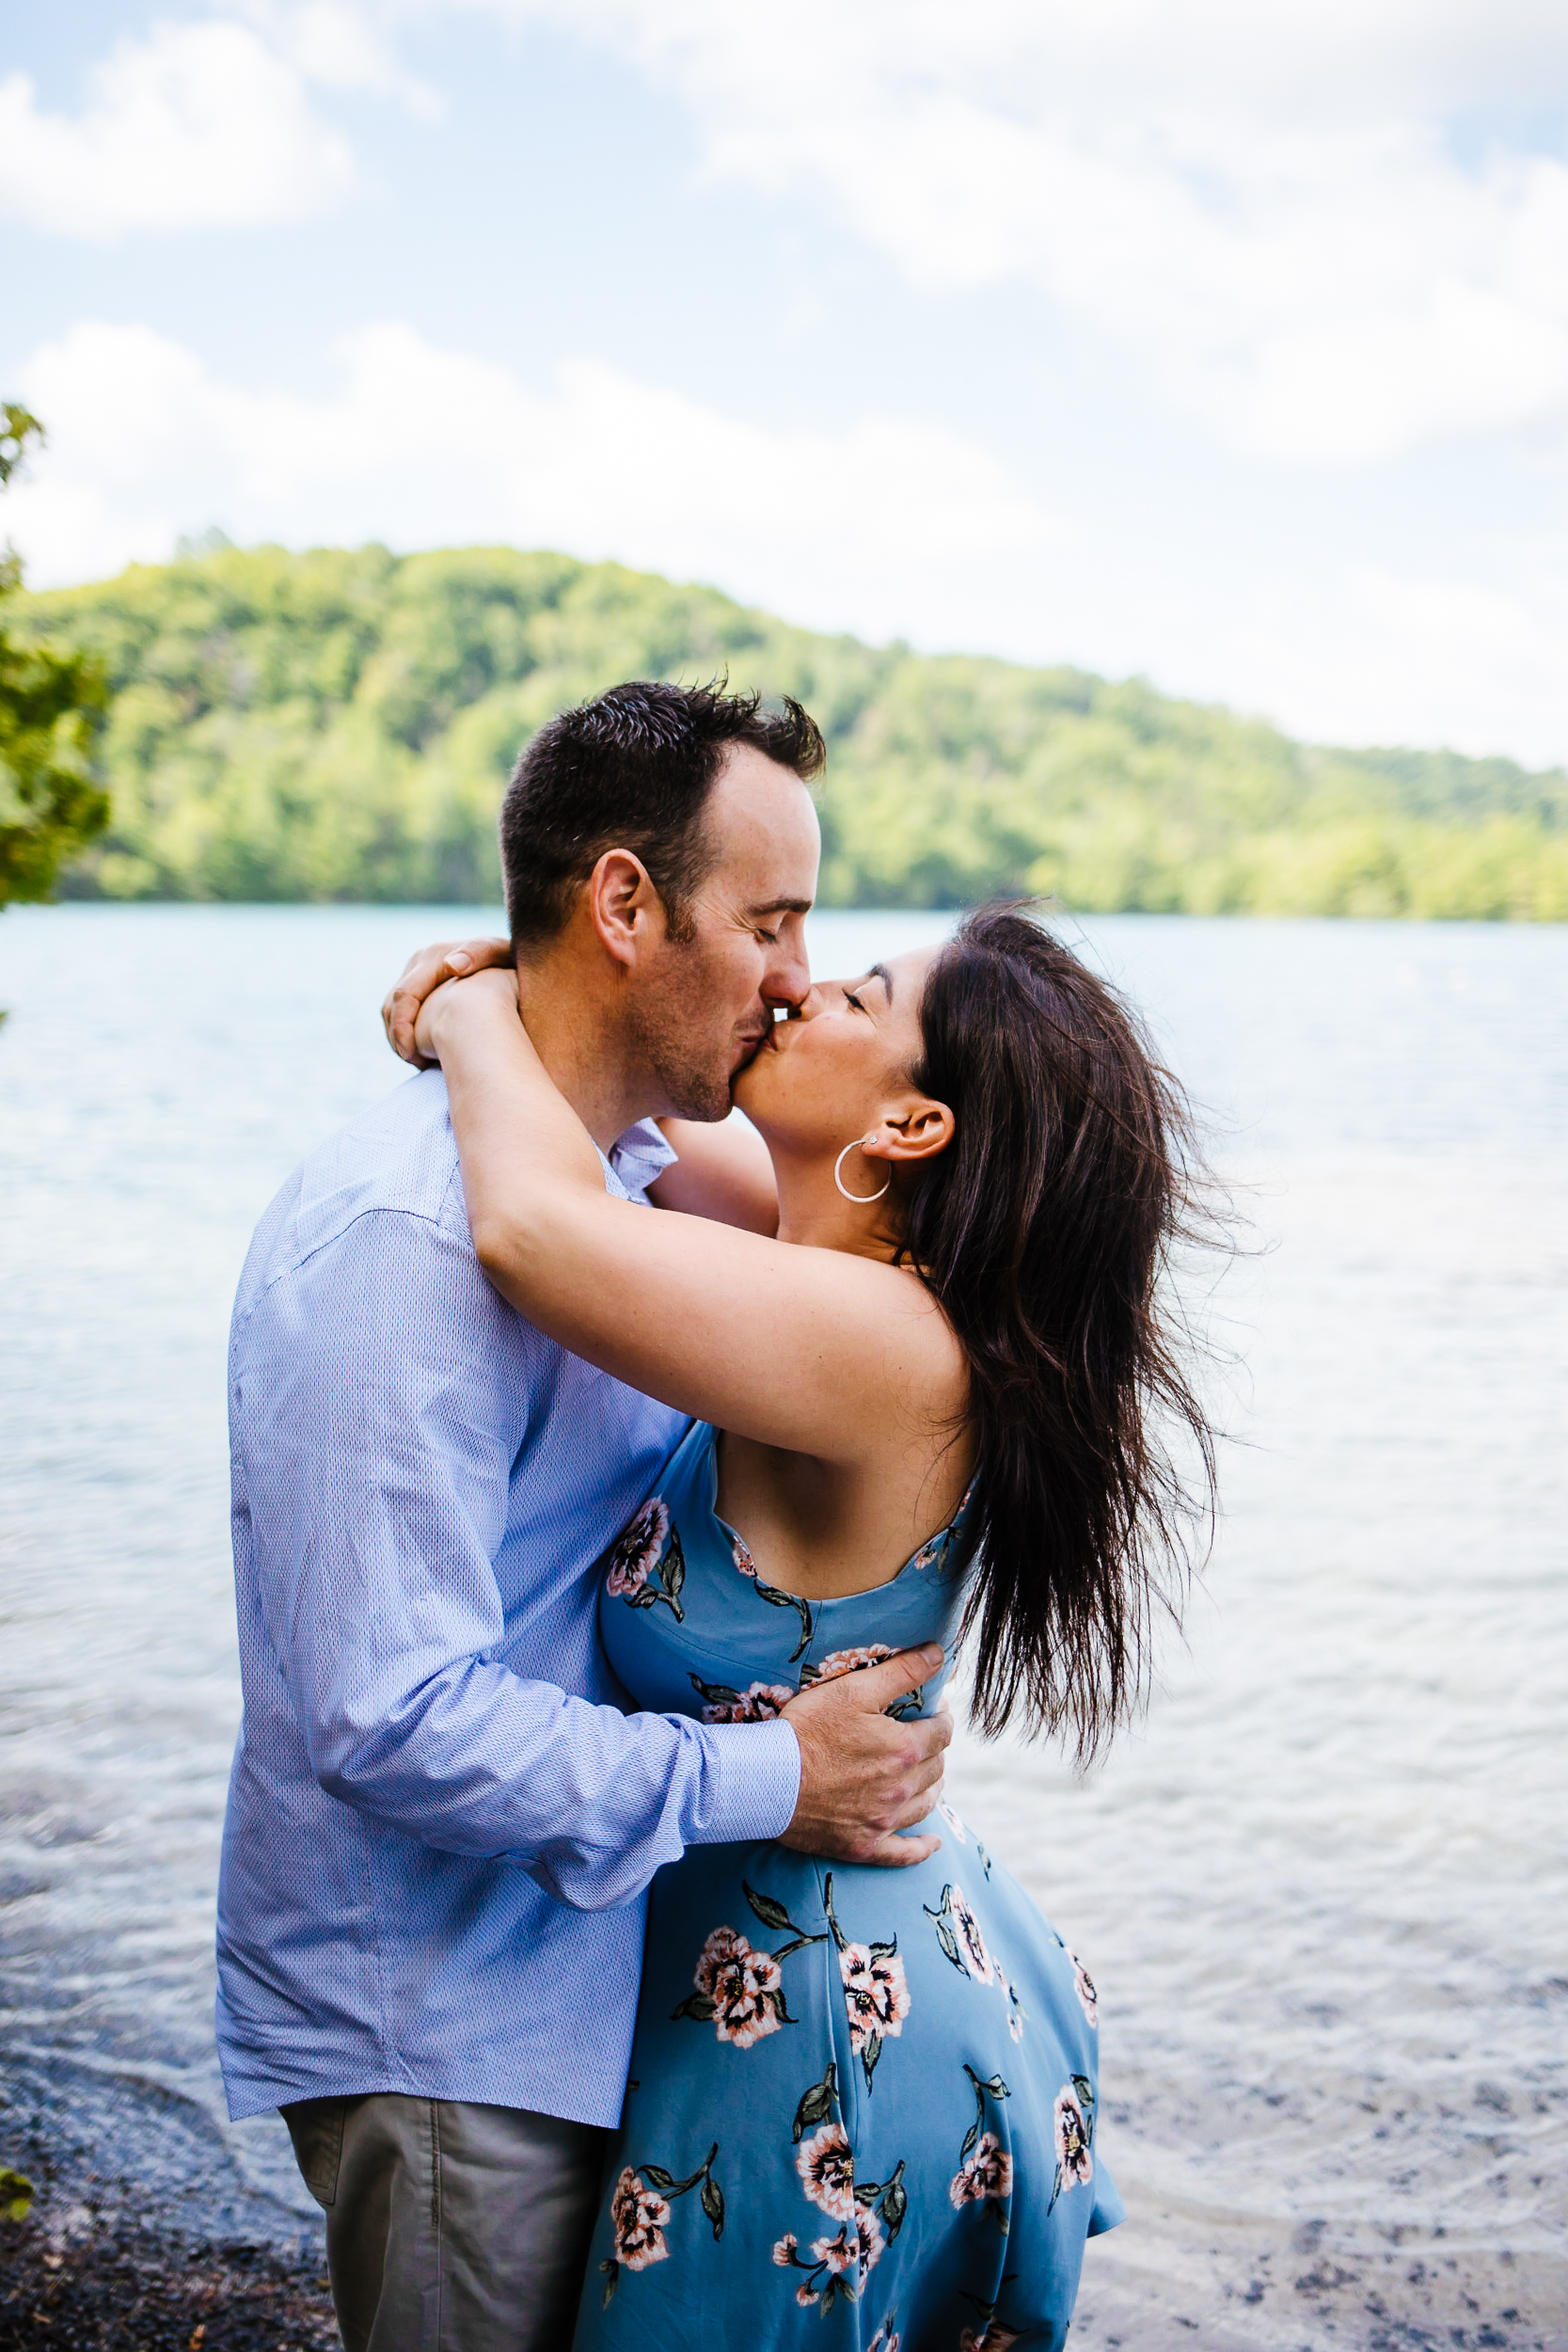 Syracuse NY engagement photographer, Syracuse ny engagement photography, Syracuse NY engagement photos, engagement session in syracuse NY, Green Lakes engagement session, green lakes engagement photos, photos at green lakes, engagement session at green lakes, engagement inspo, couple, romance, outdoor engagement session, summer engagement session, lakeside engagement session, engagement session at the beach, engagement session in the woods, portrait session, unique engagement session